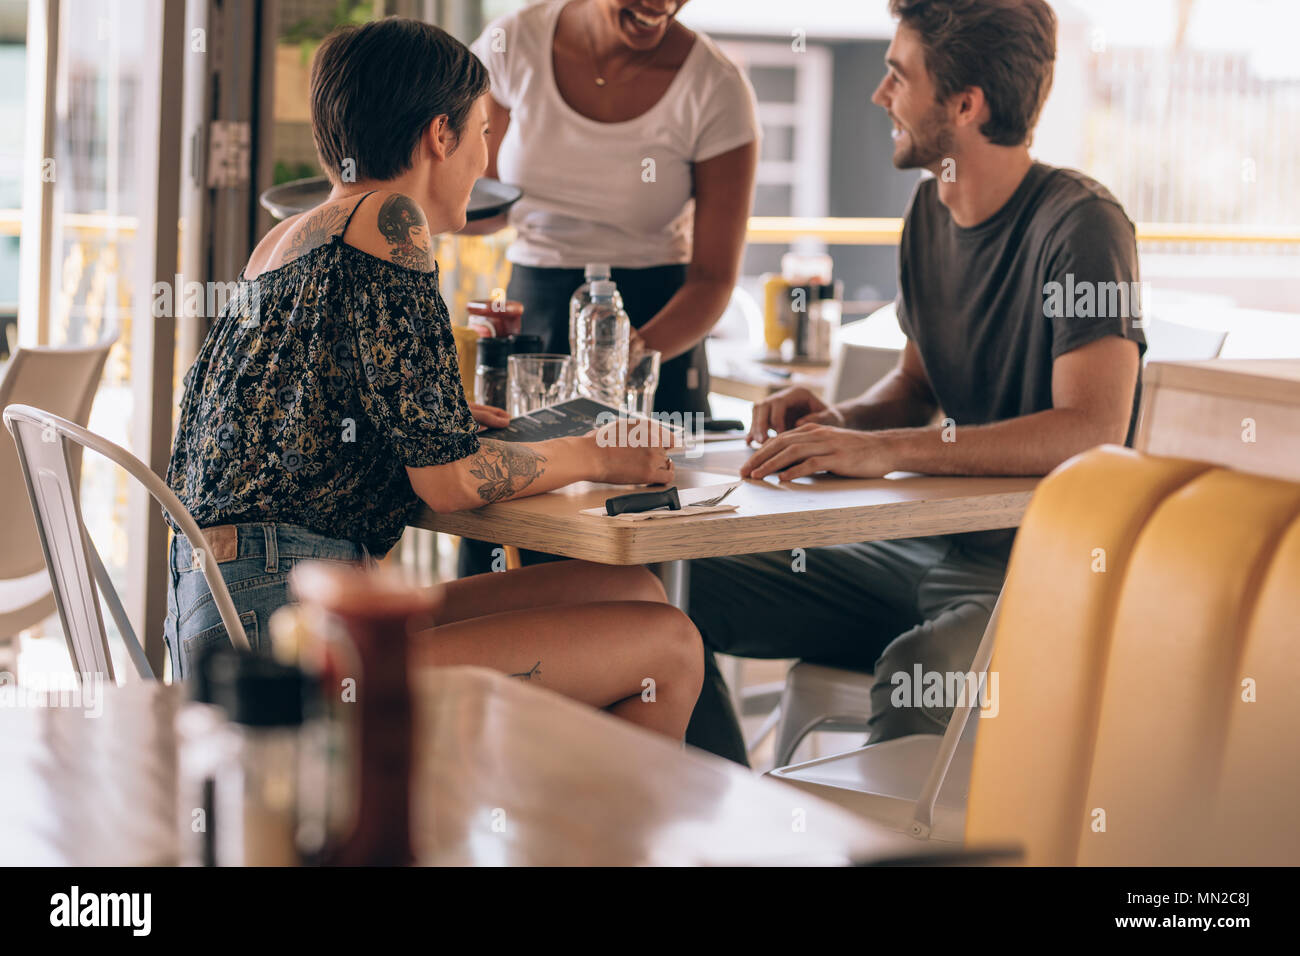 Young couple sitting at cafe giving order to a female waiter. Man placing order to a waitress at restaurant while sitting with his girlfriend. - Stock Image